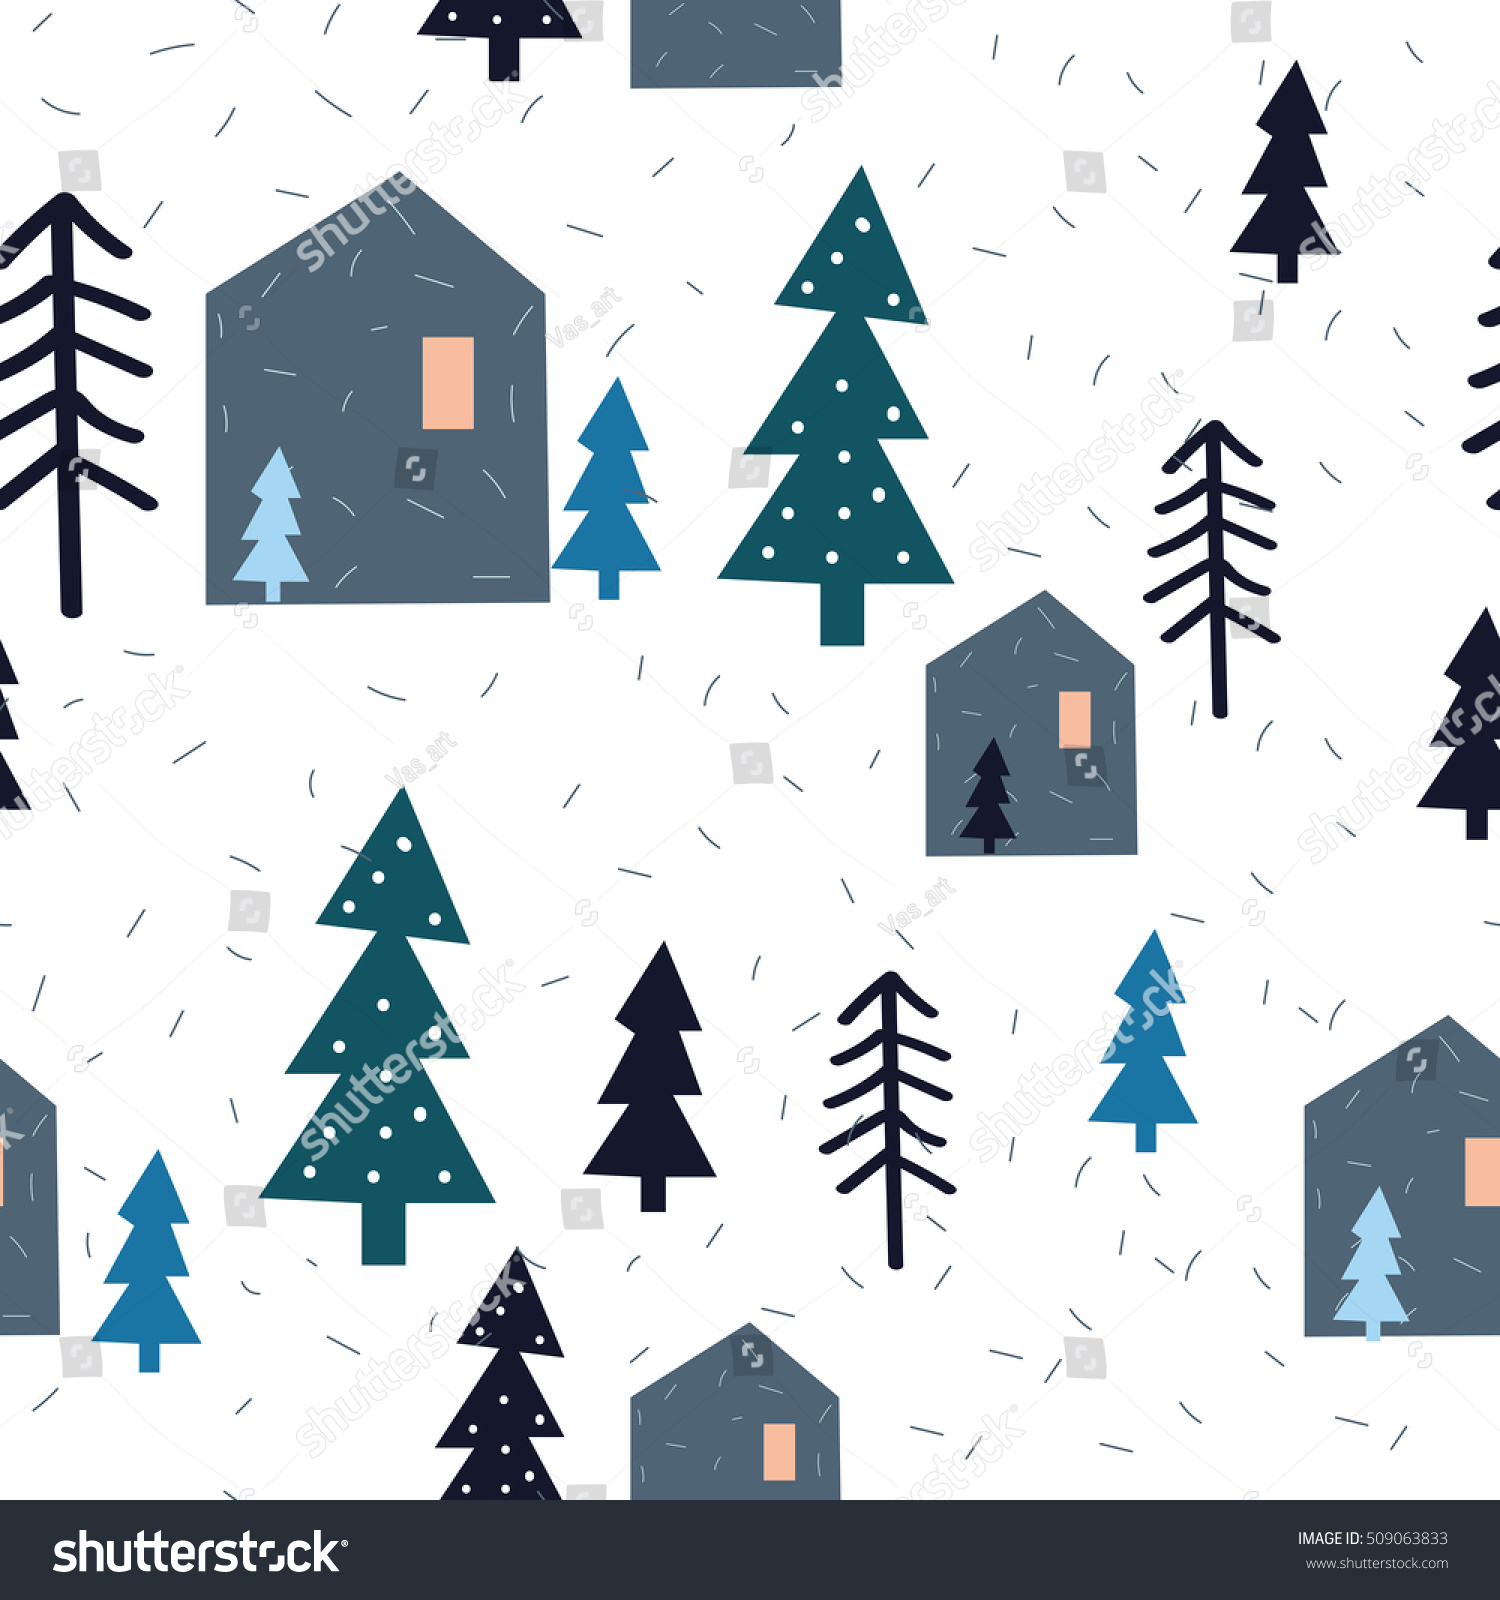 Seamless fir tree scandinavian pattern textile background wrapping - Stylish Seamless Pattern With Houses Christmas Trees And Snow On White Background Christmas Wrapping